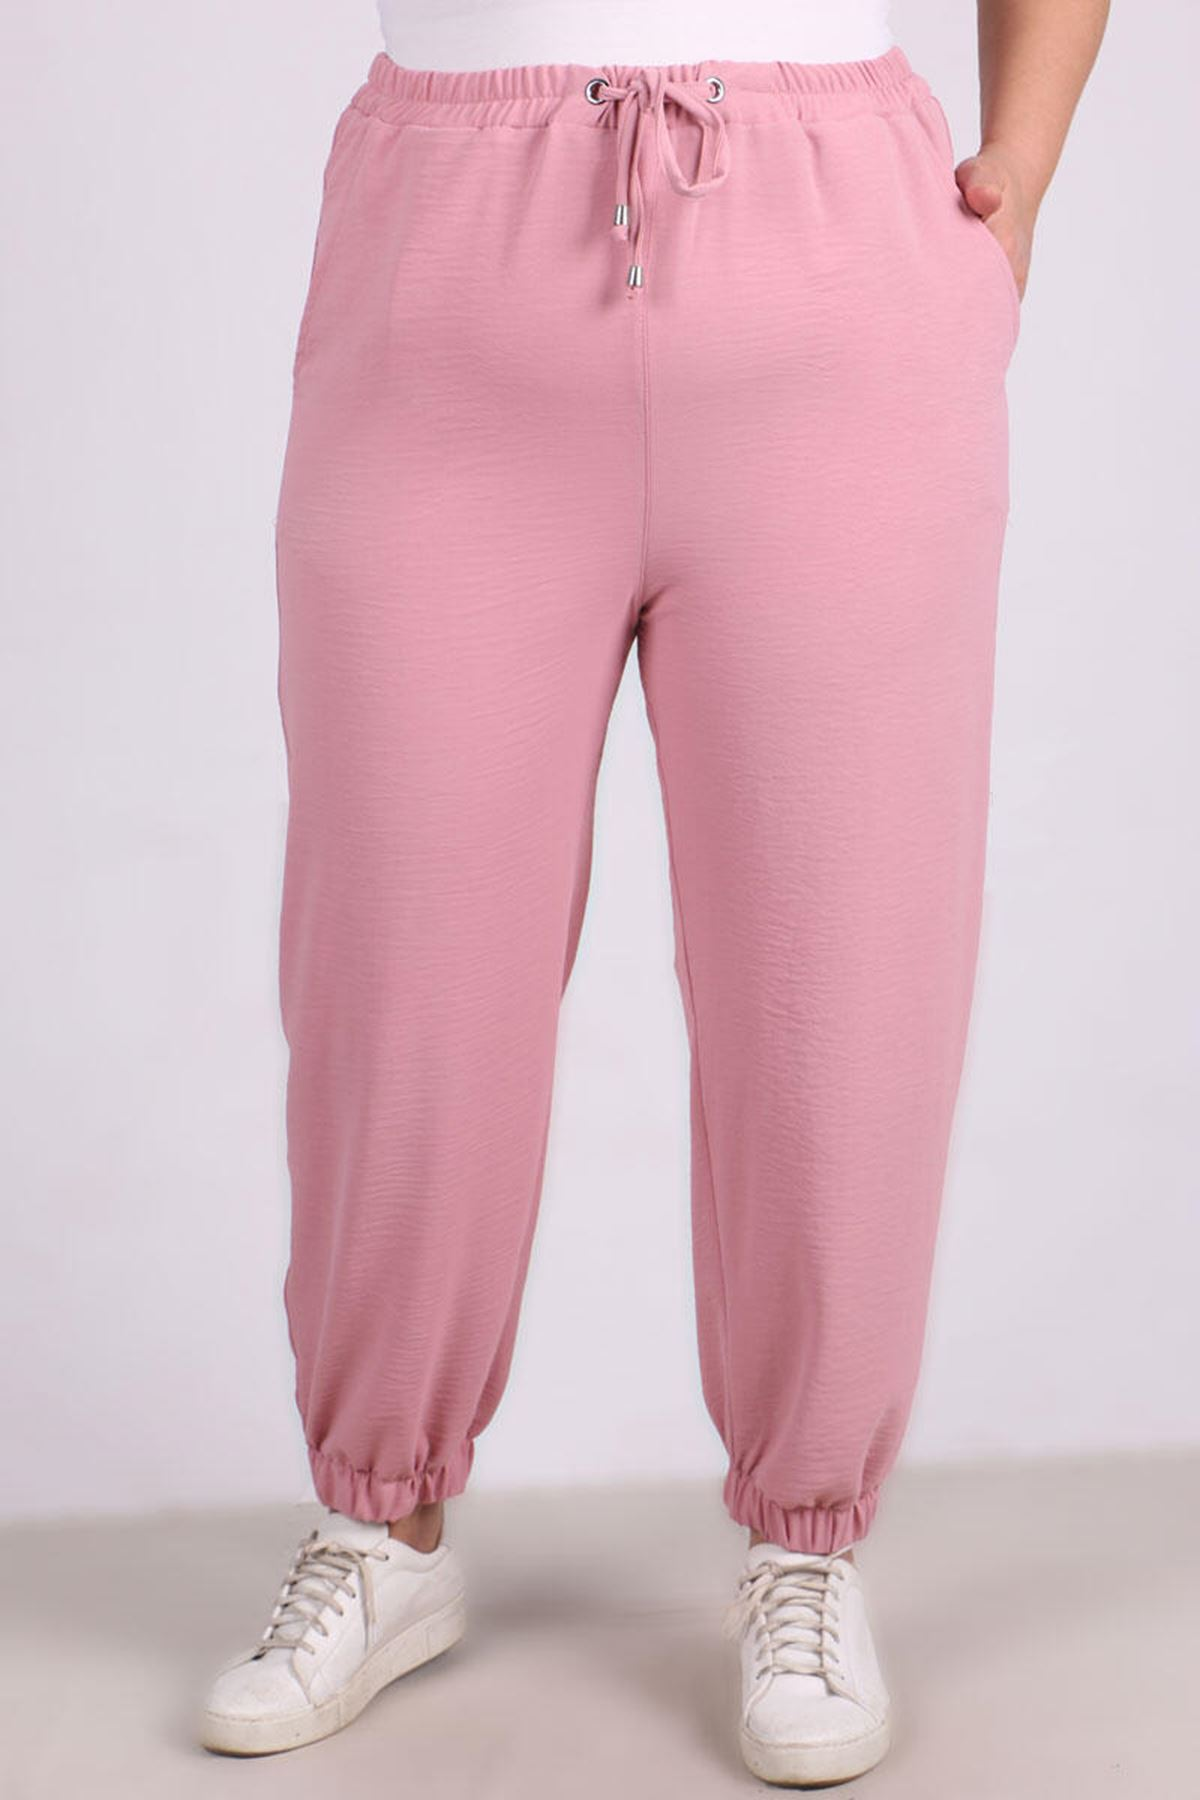 9113 Plus Size Pants with Elastic Waist and Trotters - Powder